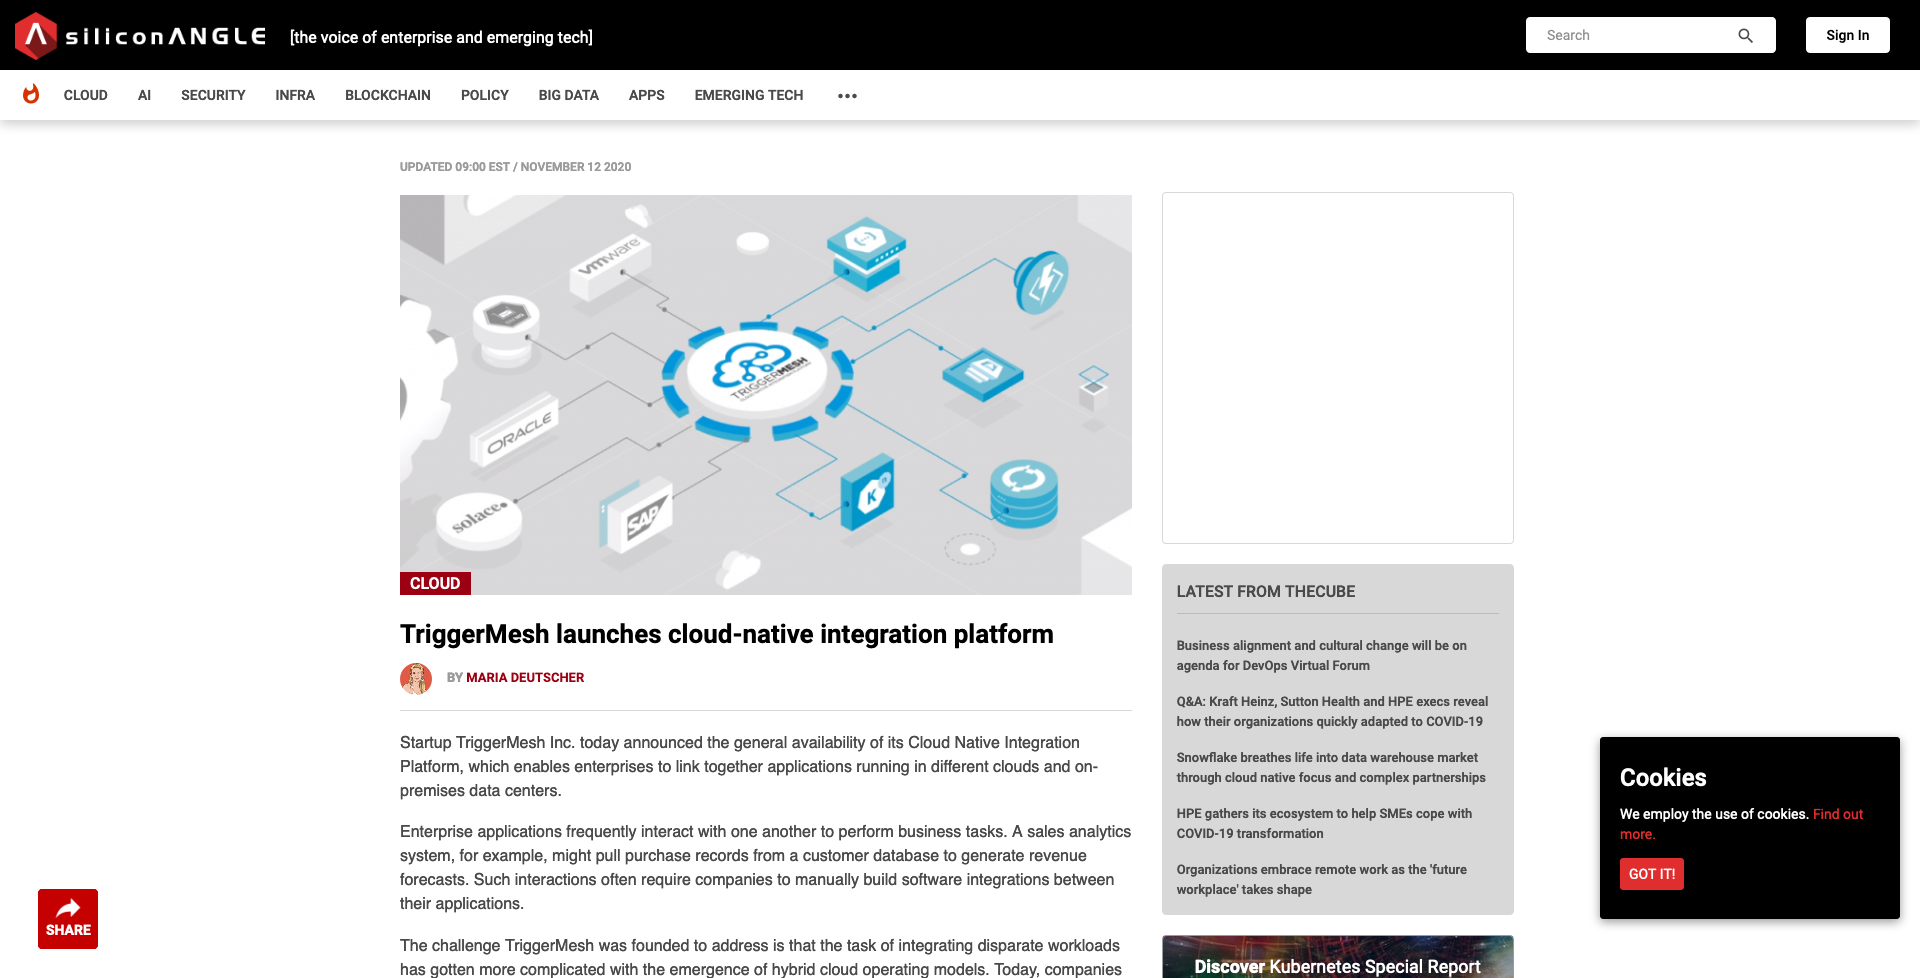 siliconangle-TriggerMesh launches cloud-native integration platform